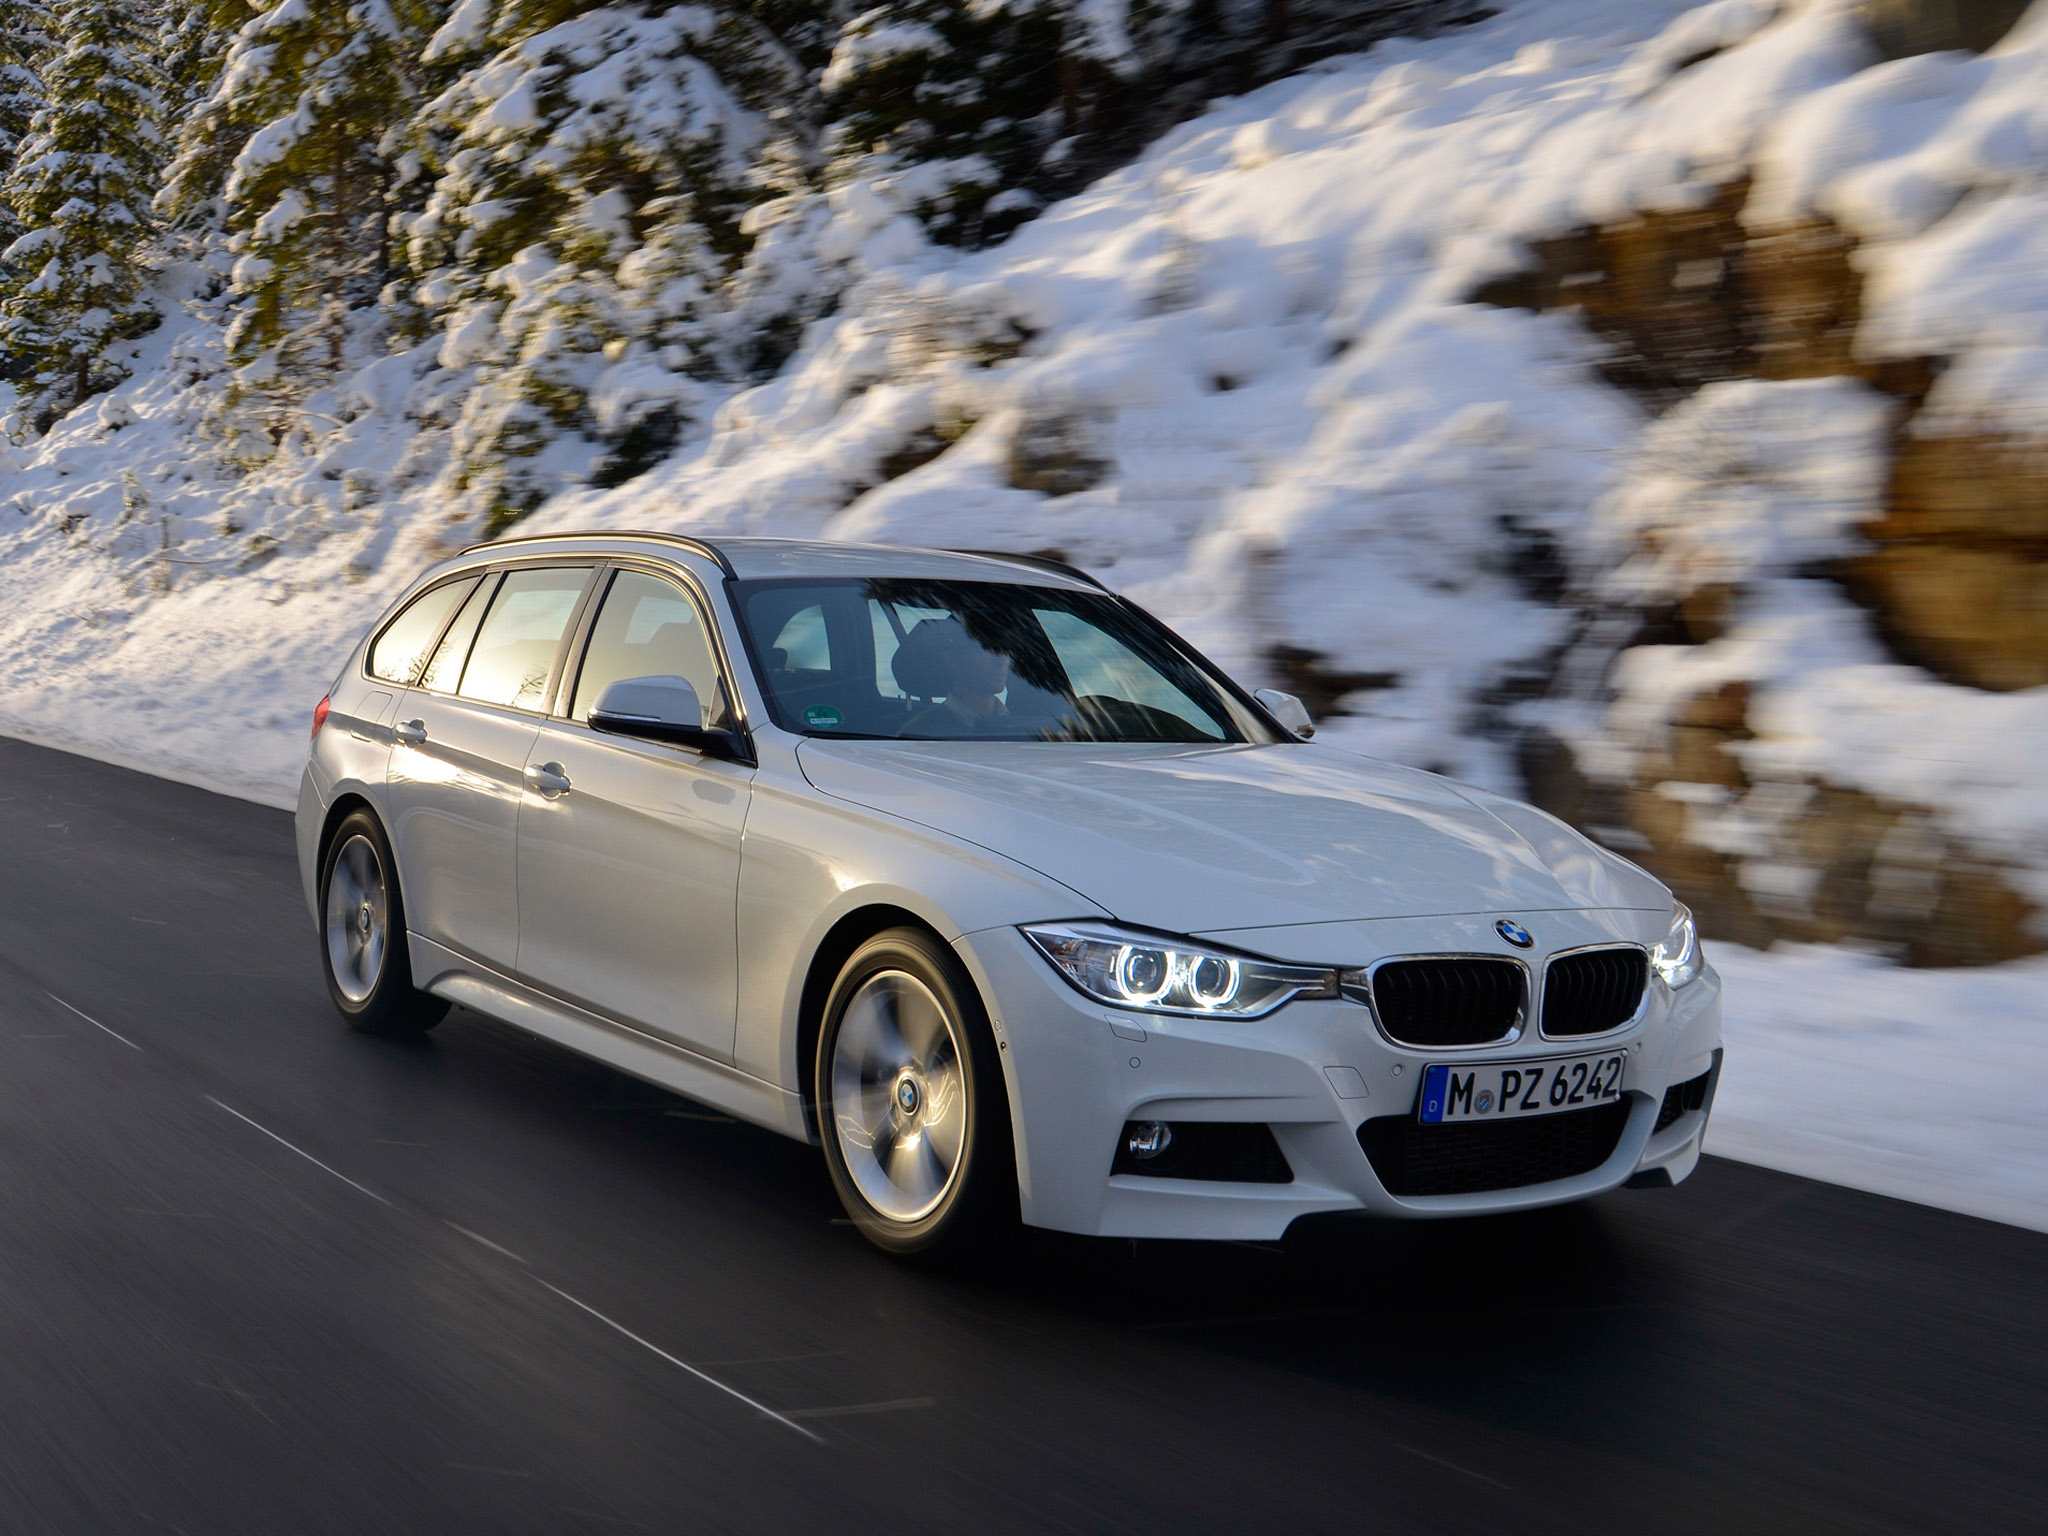 bmw 320d xdrive touring m sports package f31 2013 bmw 320d xdrive touring m sports package f31. Black Bedroom Furniture Sets. Home Design Ideas